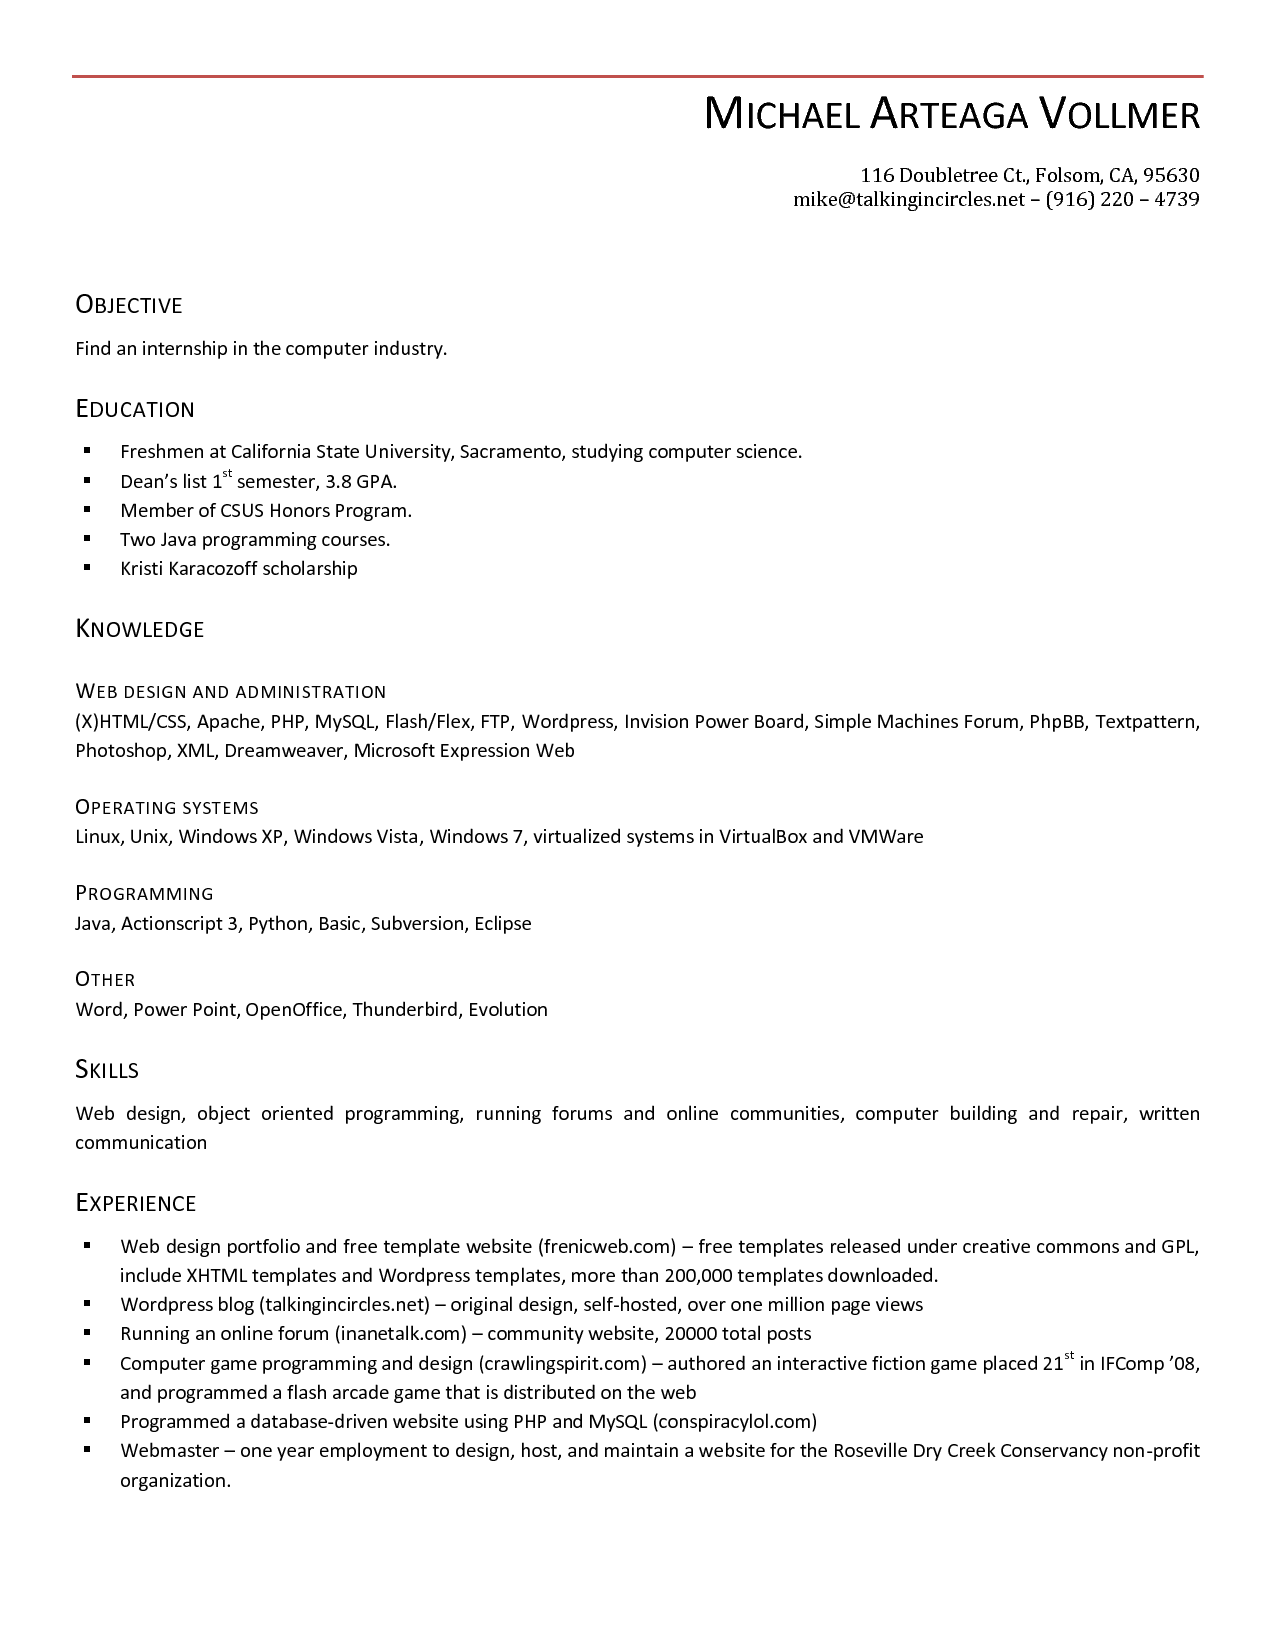 Resume Online Template Resume Templates Free Download For Microsoft Word Legal Template